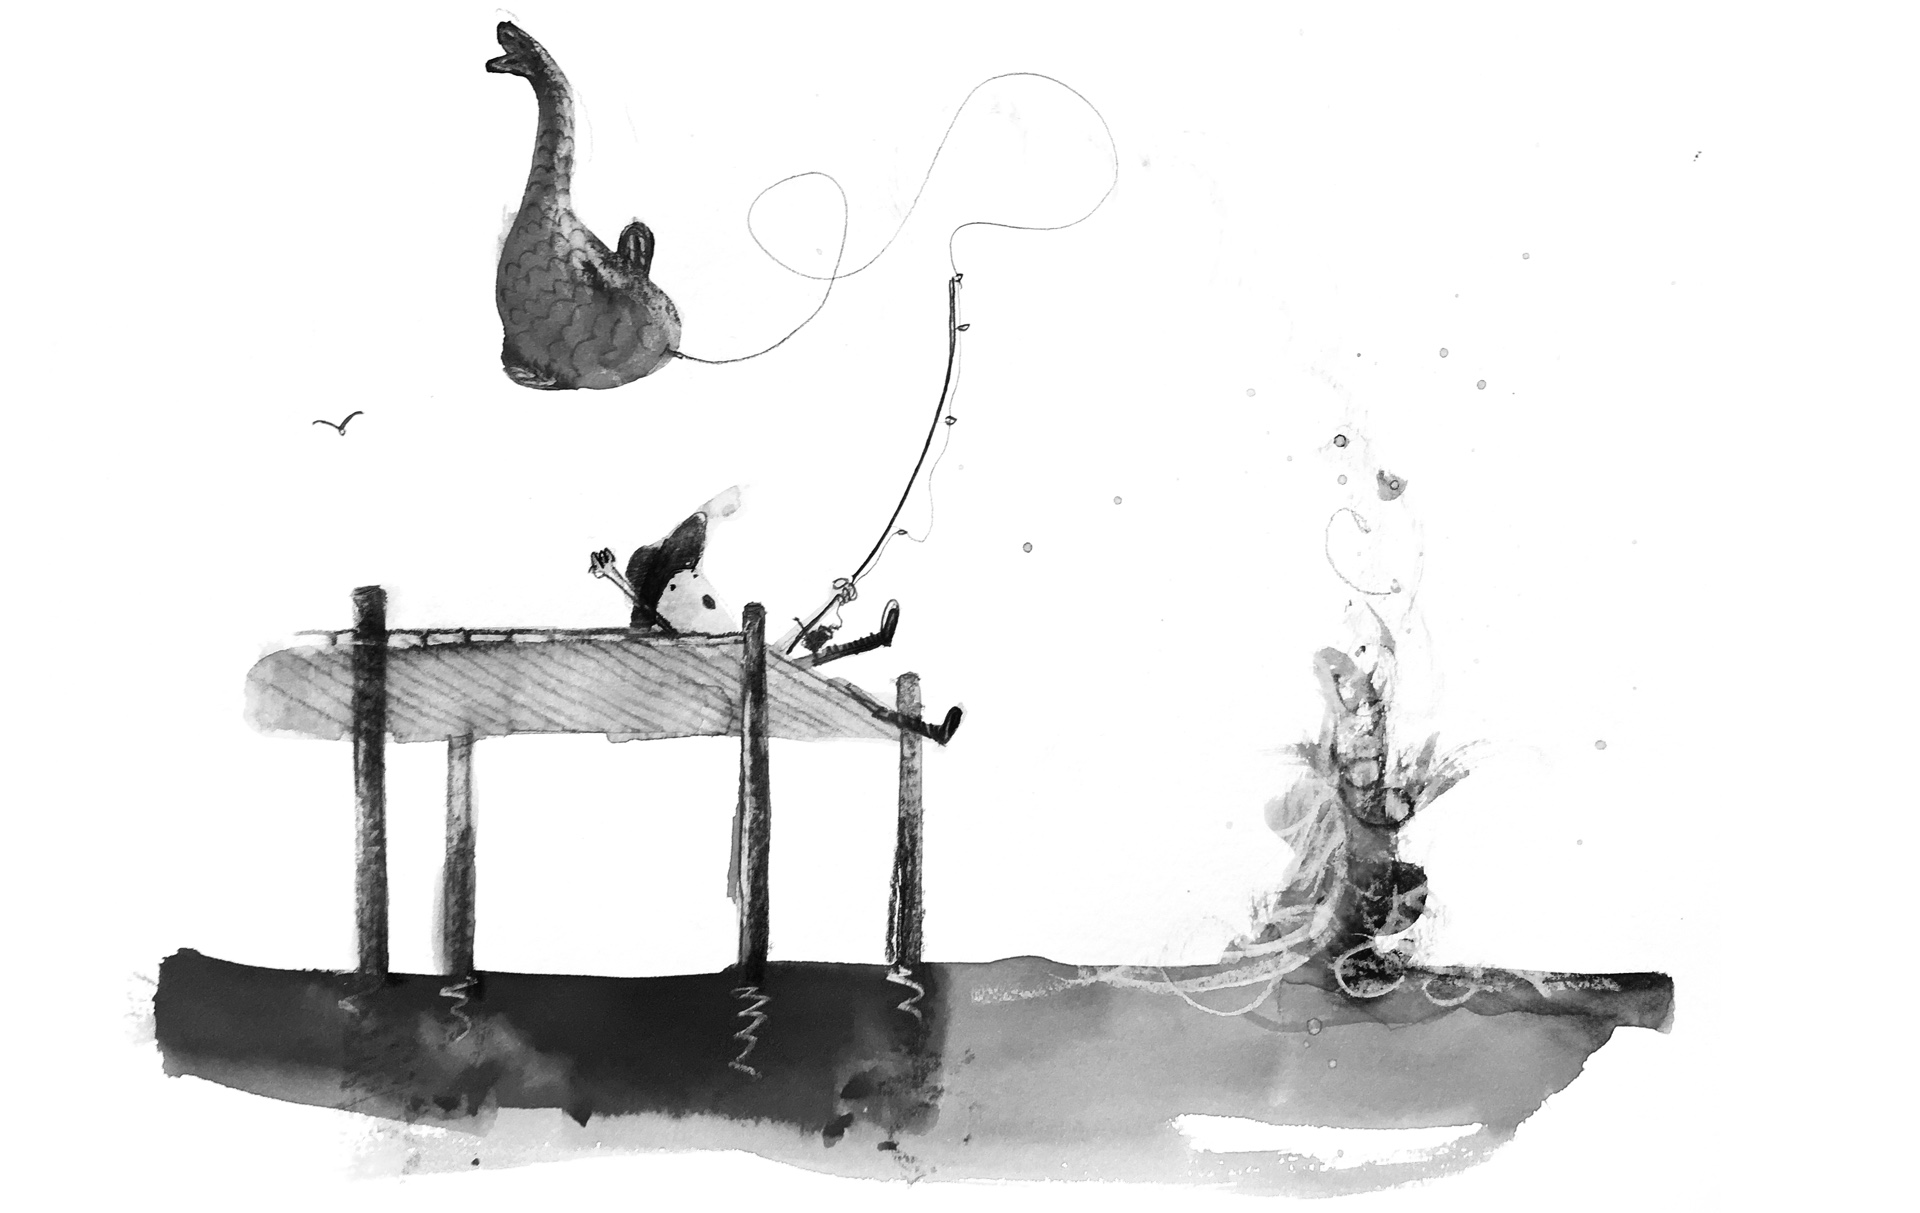 An illustration of a man fishing from a pier, yanking an enormous fish out of the water